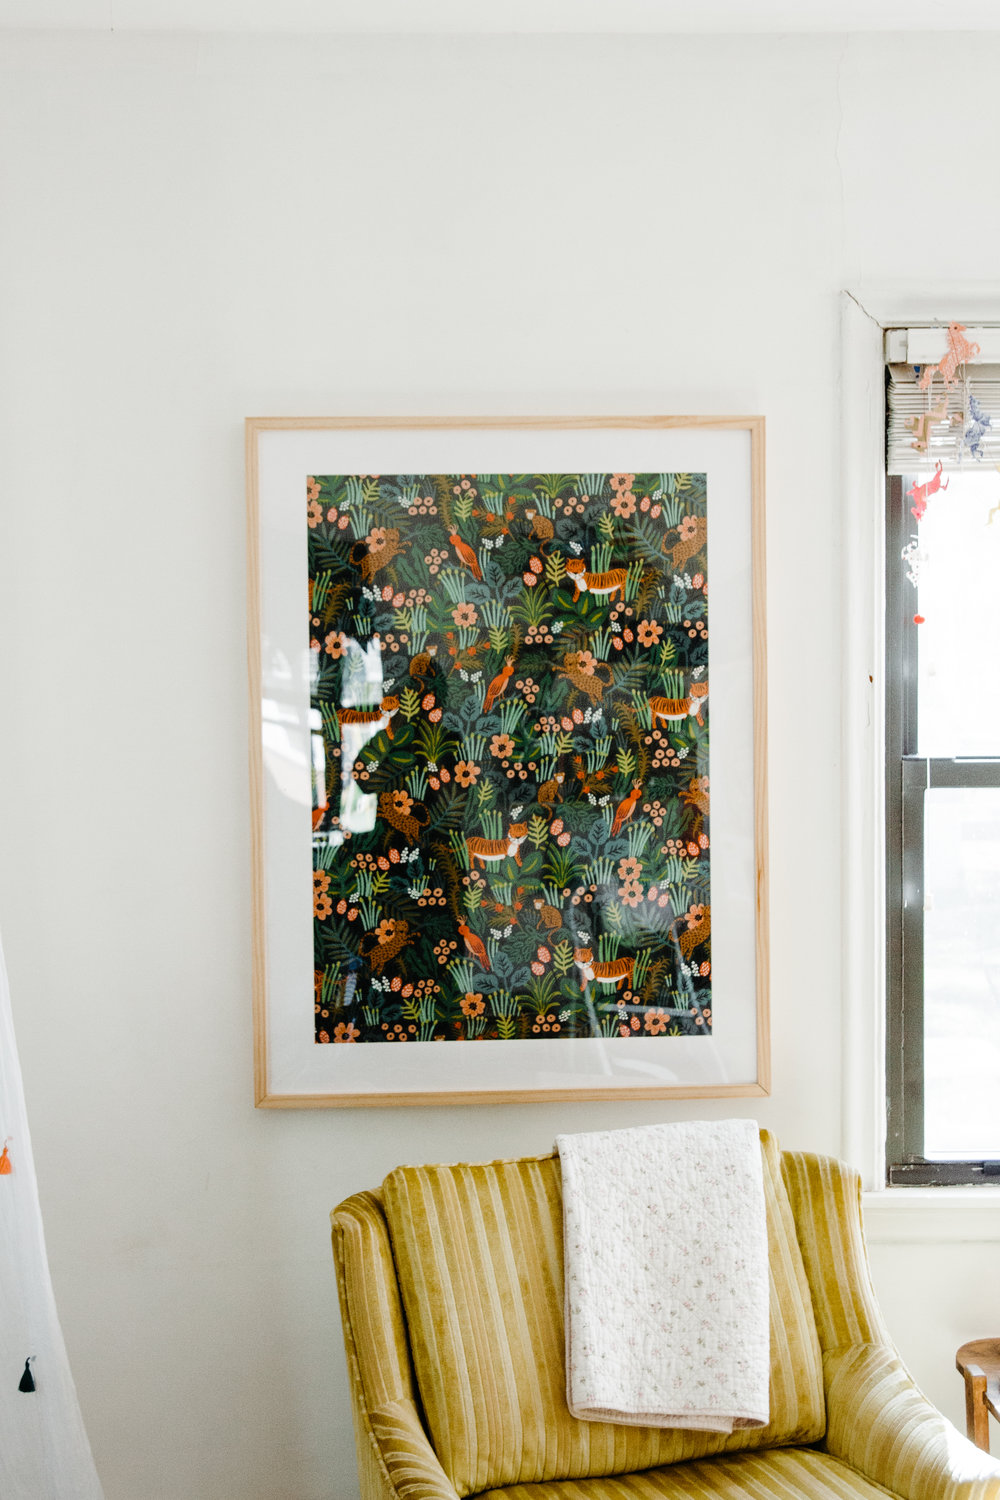 Daly put her framed Rifle Paper Co. fabric art up, and it has changed the face of her sunroom. Blog post to follow!